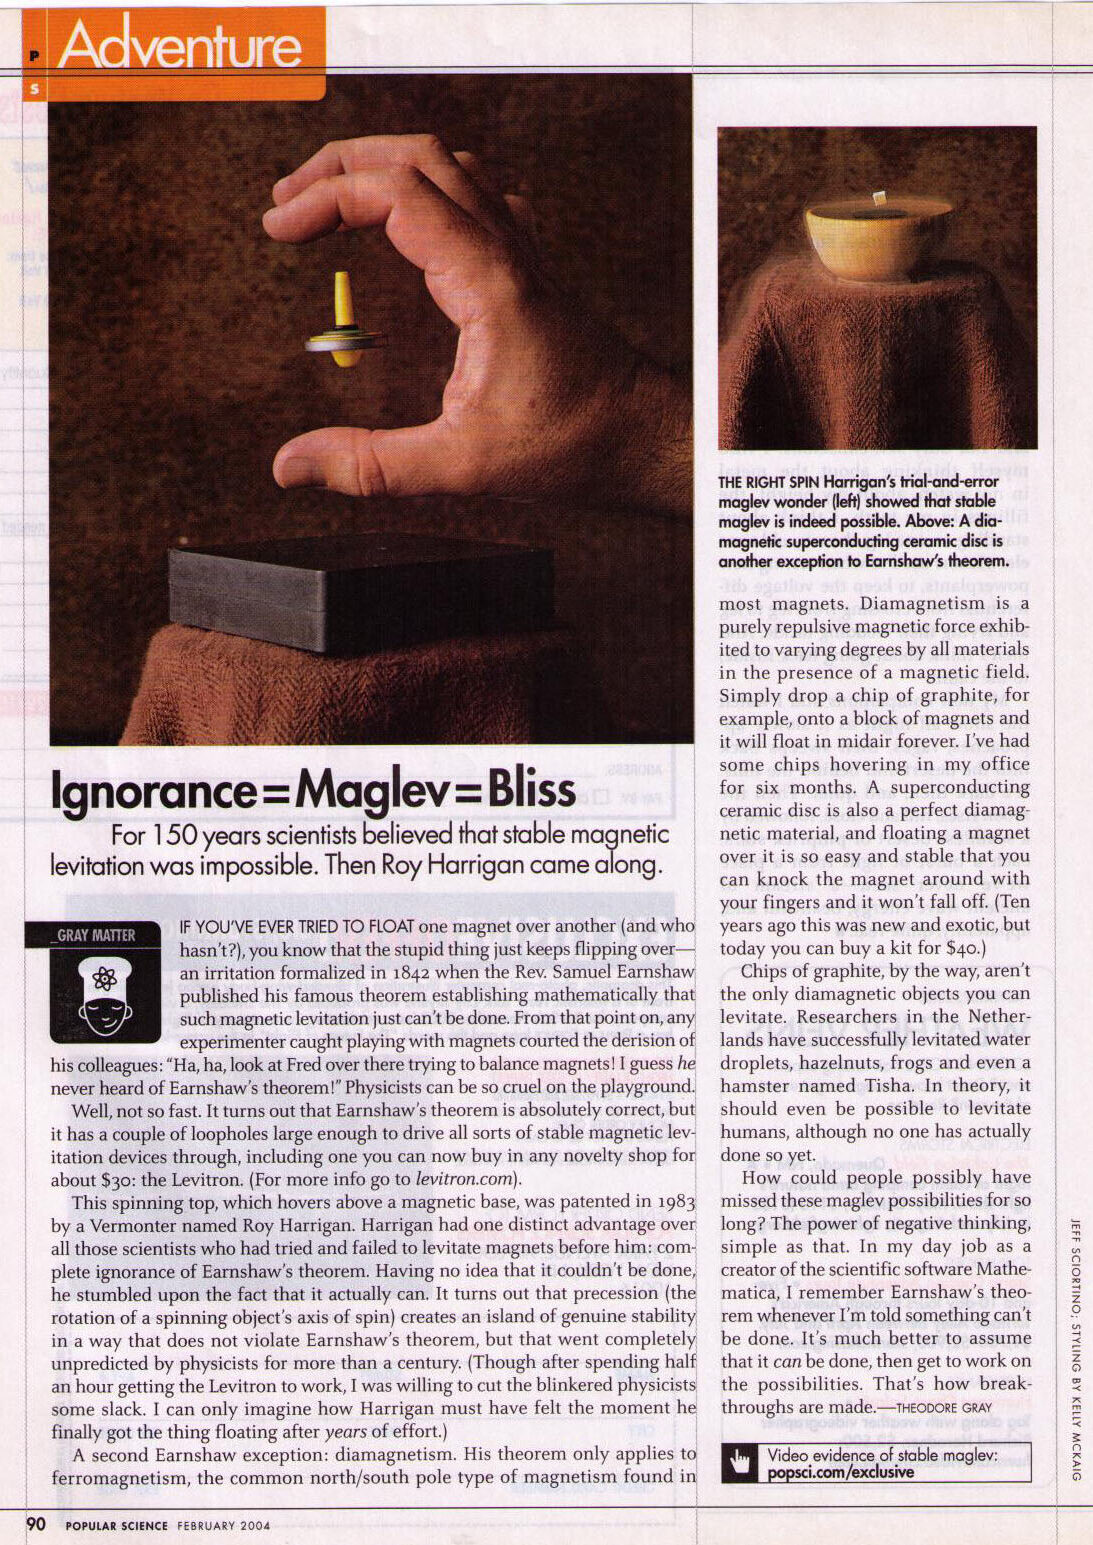 Harrigan & Diamagnetism article in 2004 Popular Science by physicist Theodore Gray